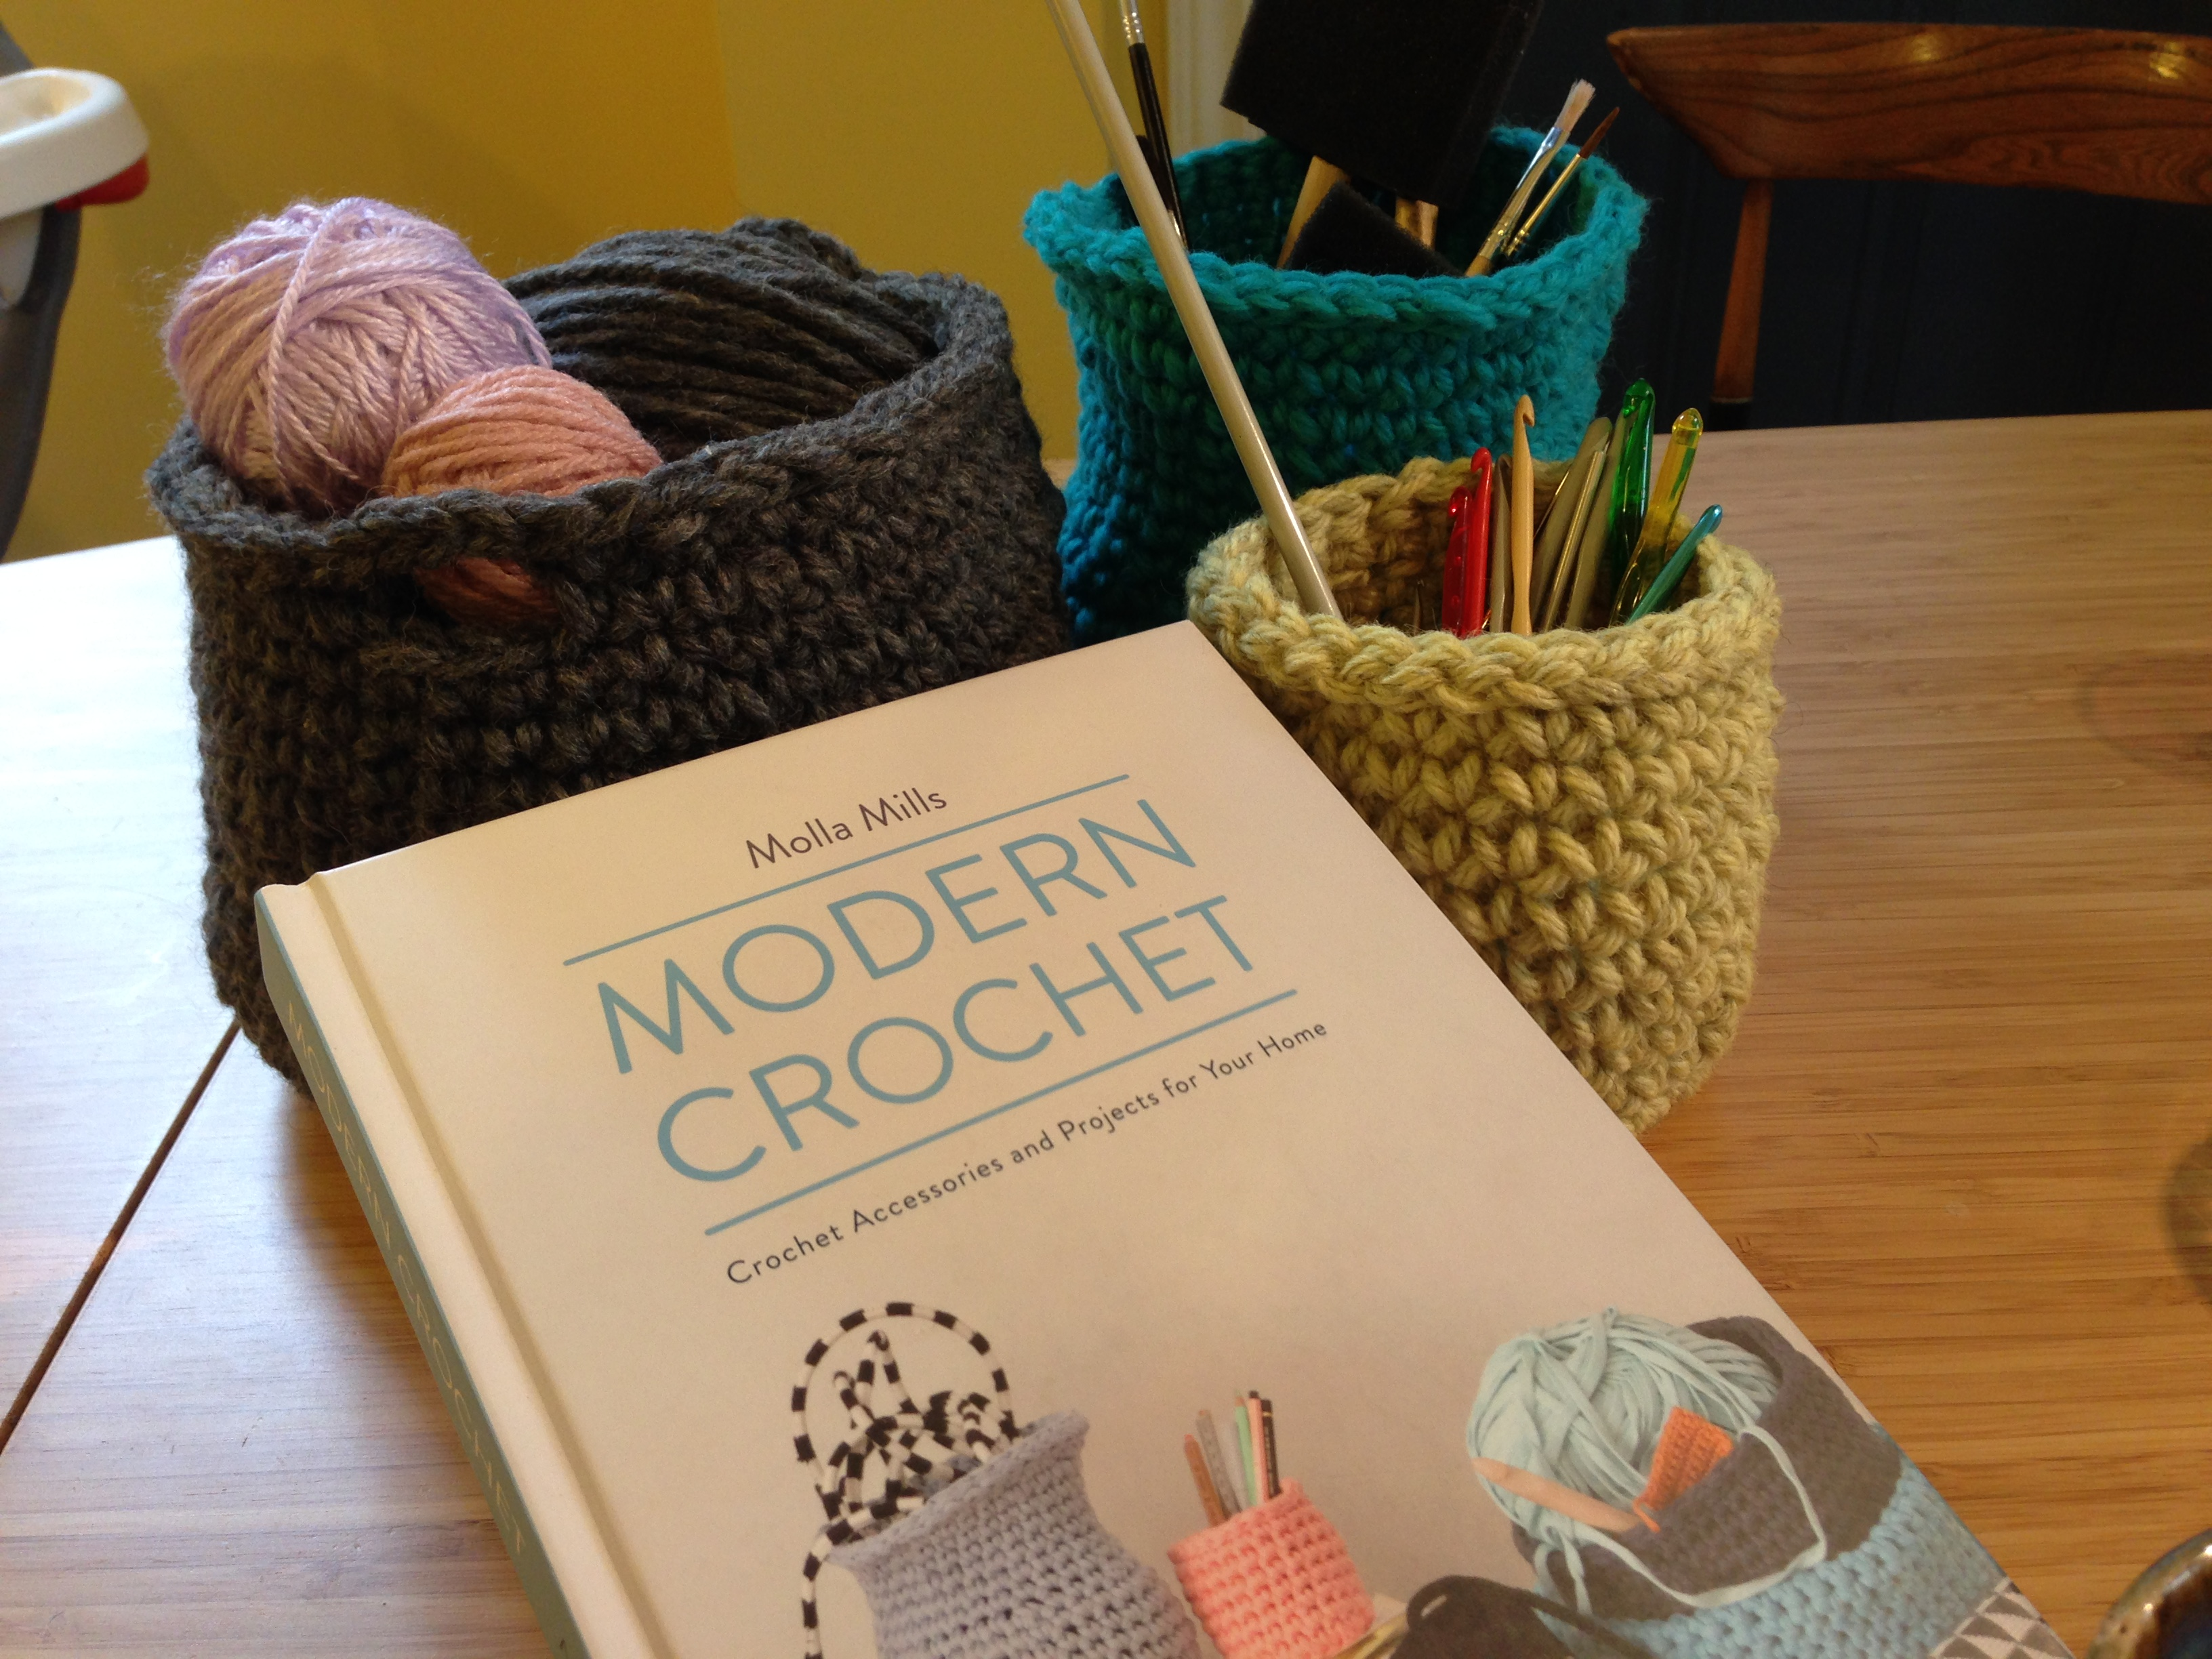 Crochet book with bowls